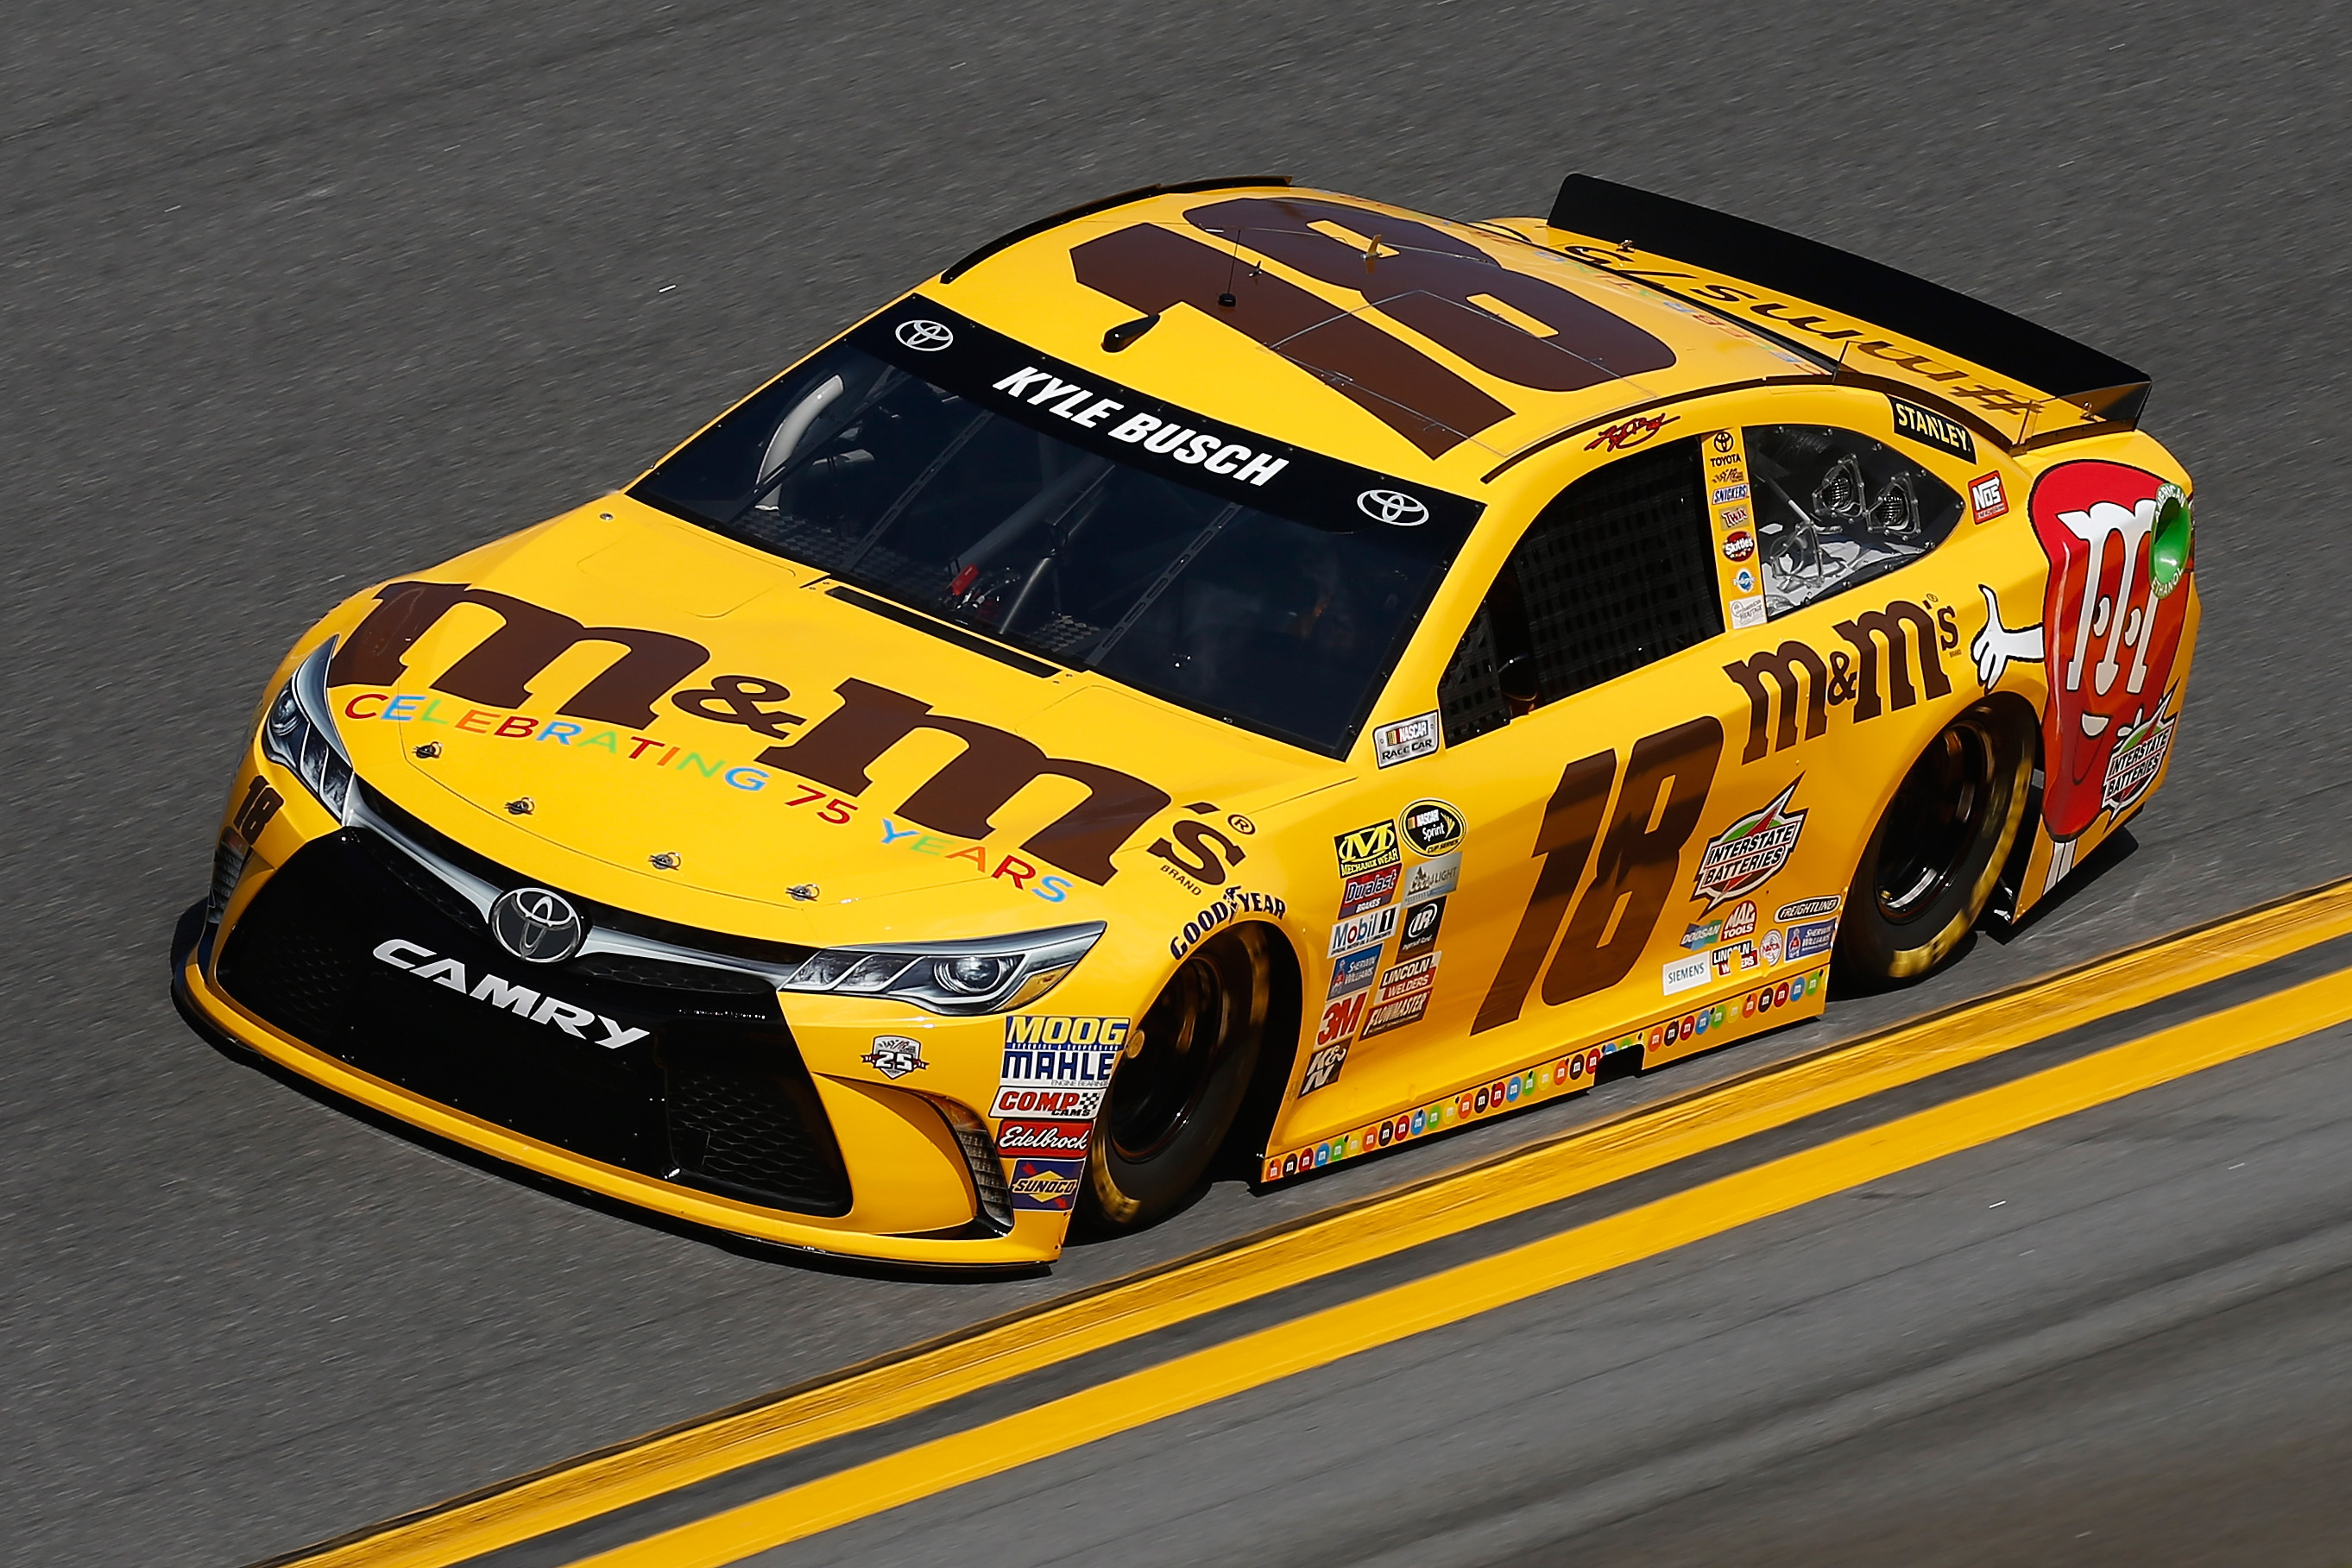 Racing preview feb 18 21 nv racing news - Pictures of kyle busch s car ...